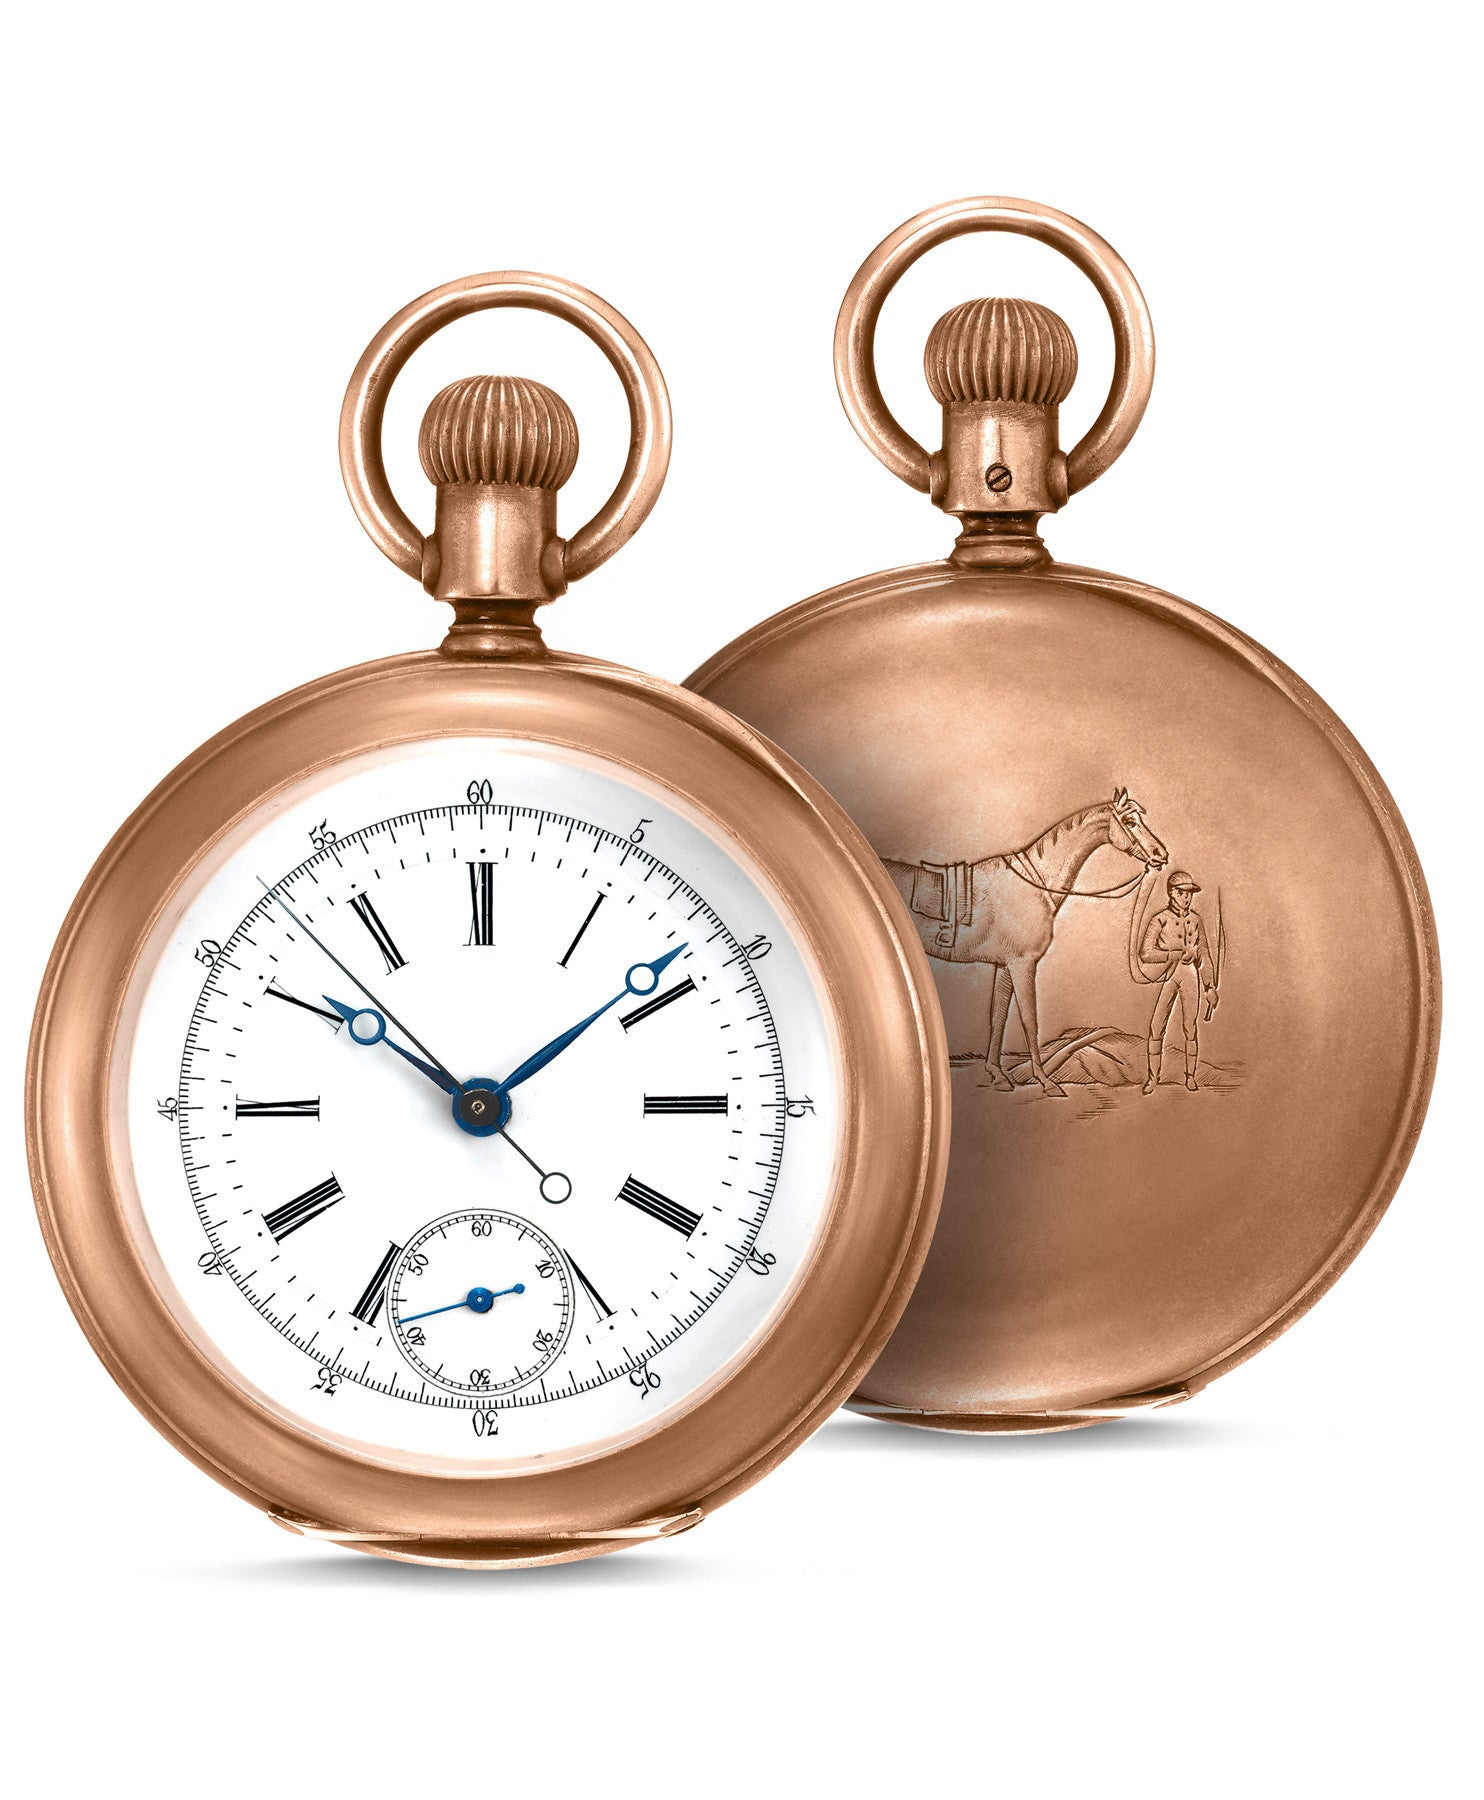 dating longines pocket watch Vintage & pocket watches  a pic of the movement will give us dating (serial numbers will date)  i have a 14k gold longines watch i am trying to figure out it .